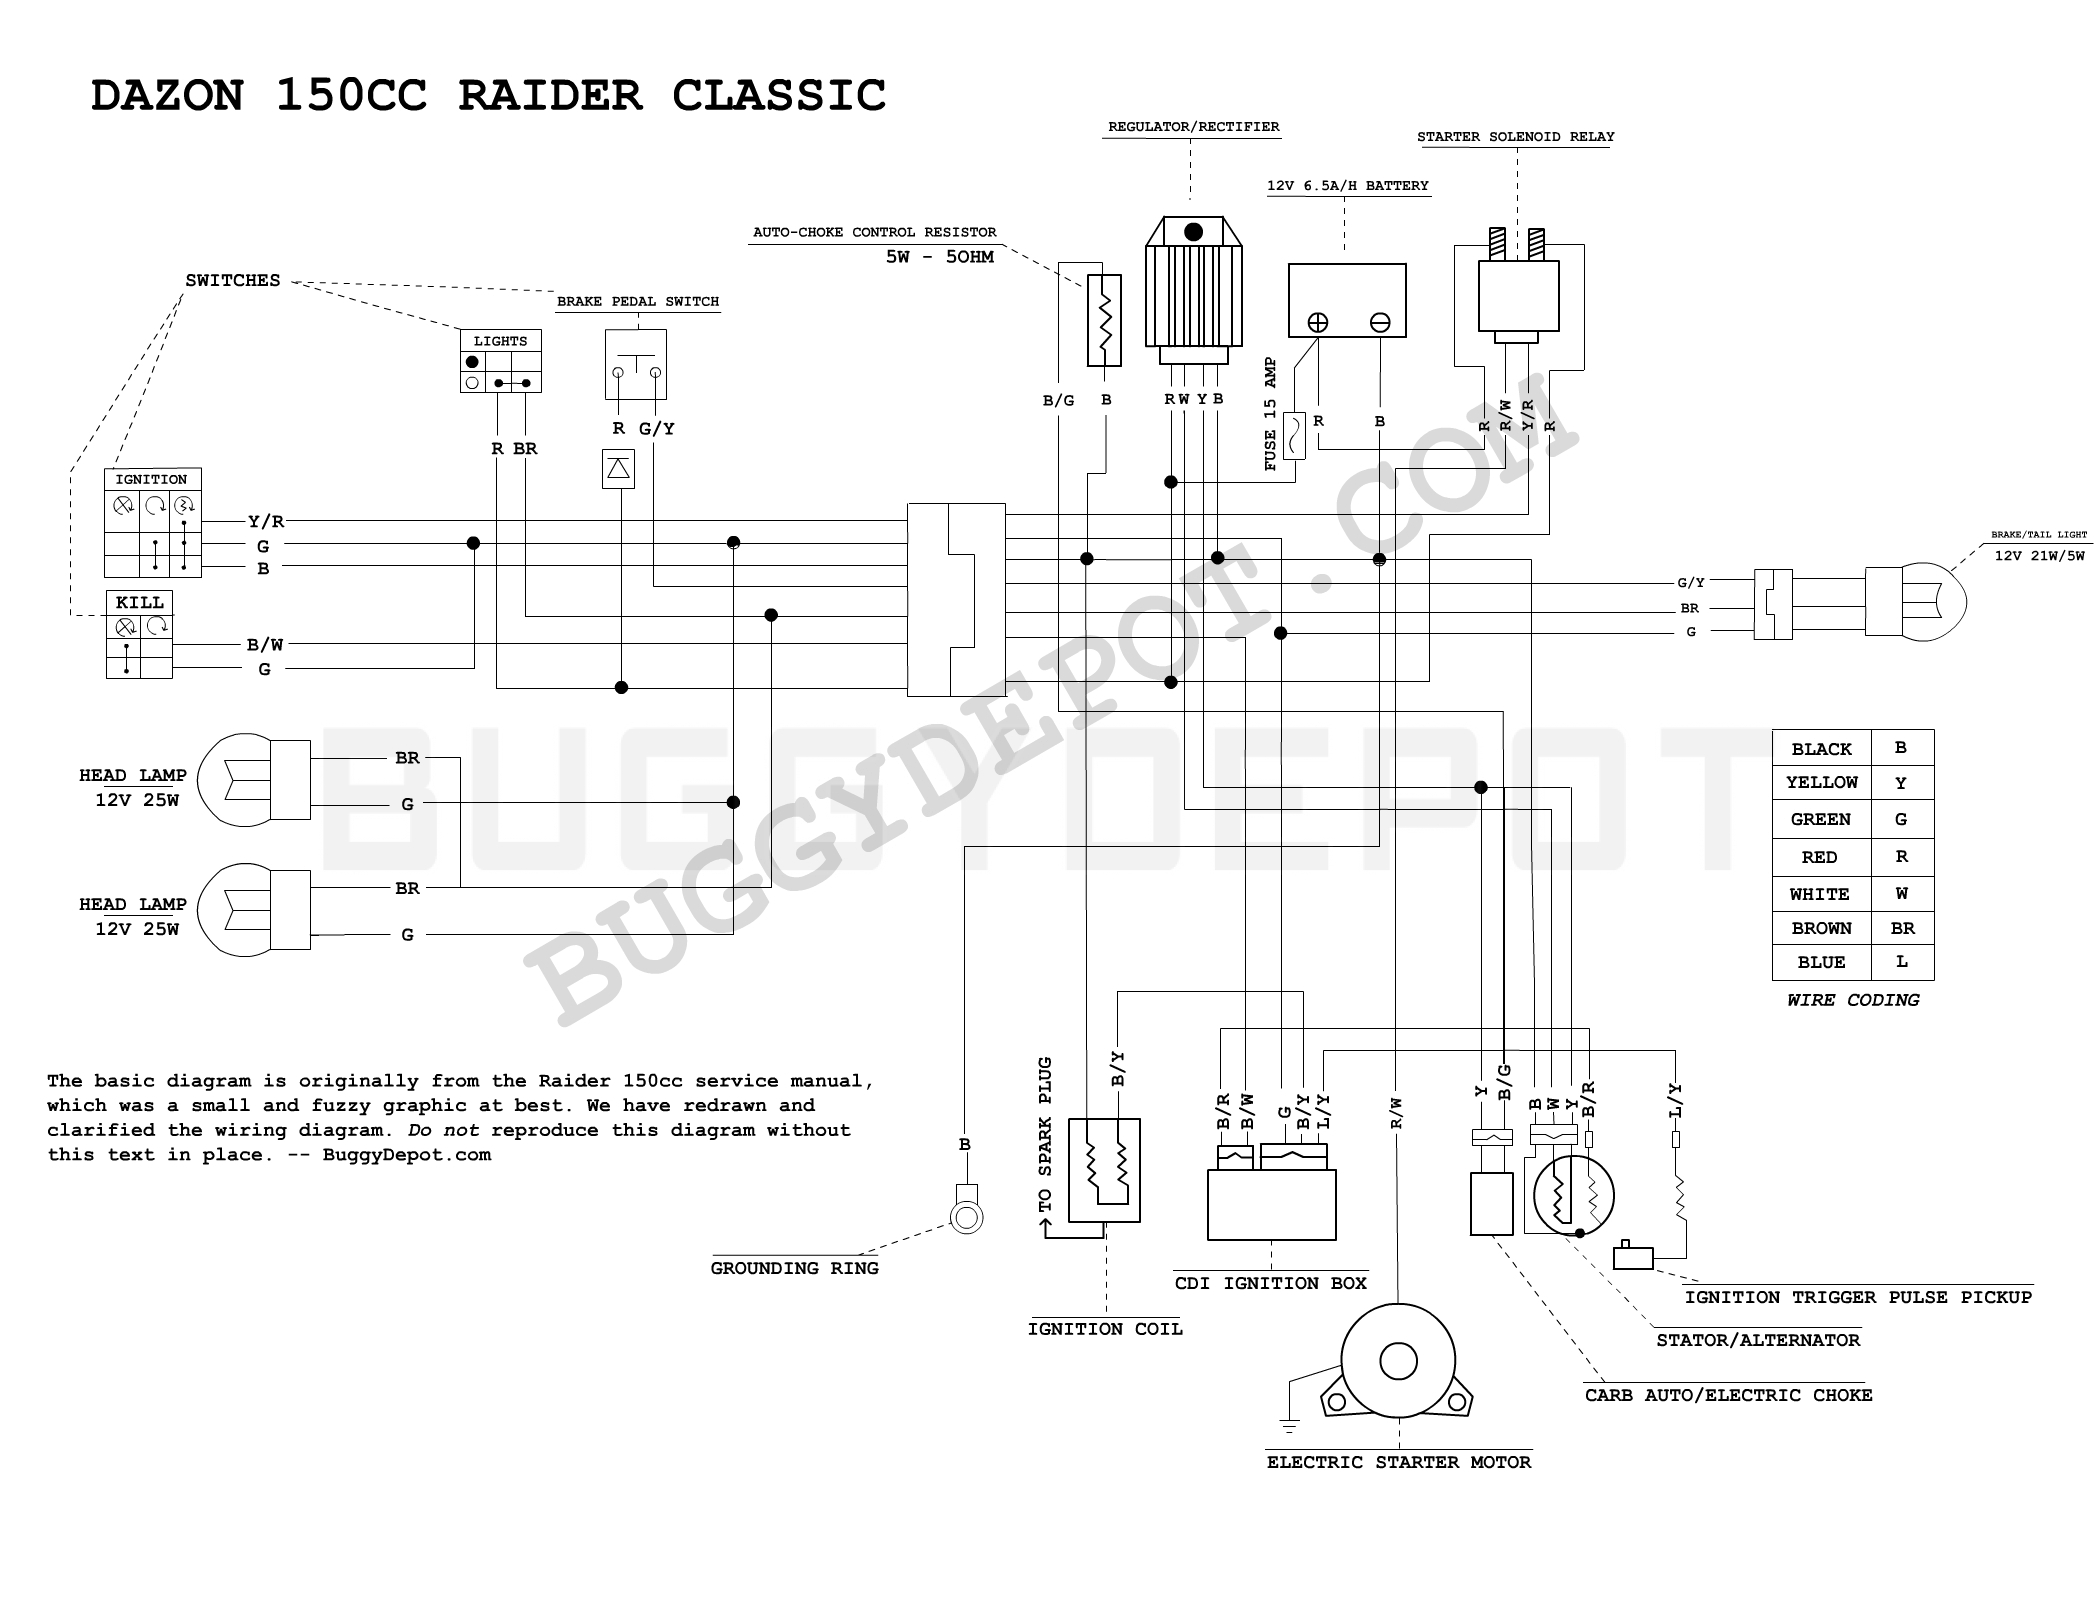 Gy6 150cc Ignition Troubleshooting Guide No Spark Buggy Depot Messy Wiring Diagram Dazon Raider Classic